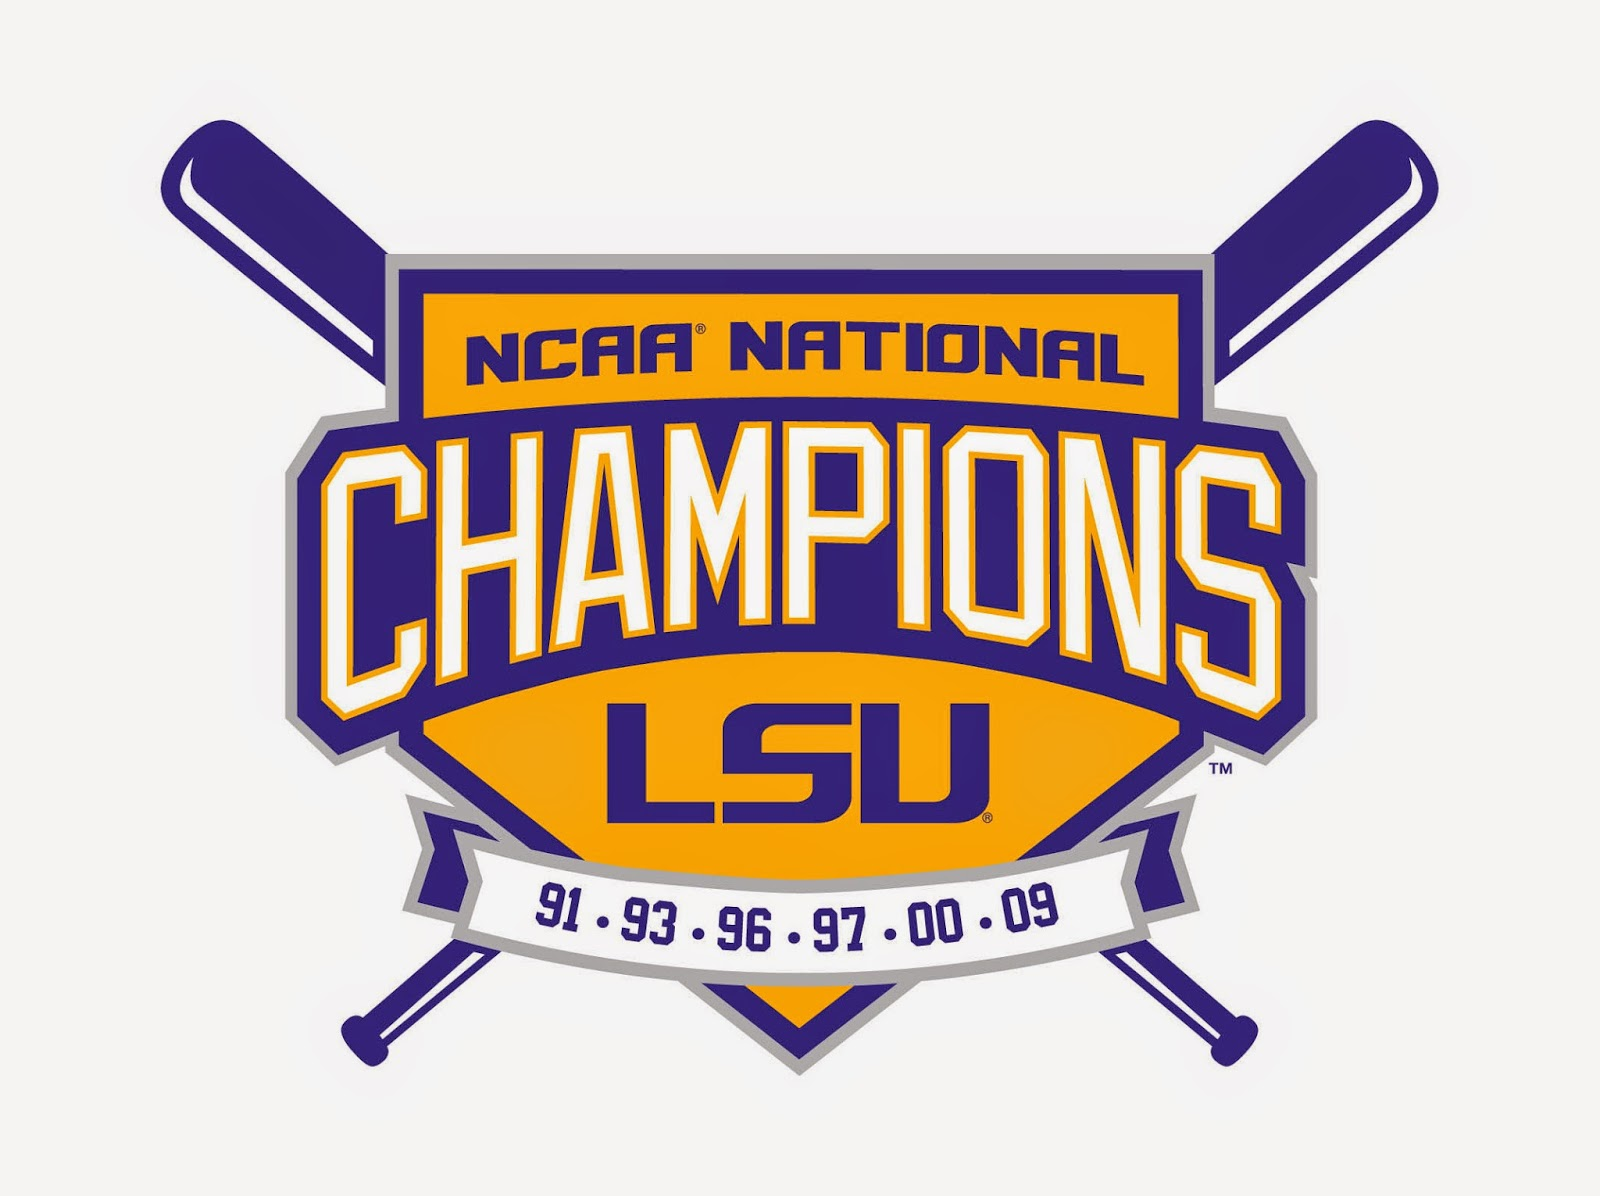 Clipart of LSU Tigers Baseball Logo free image.